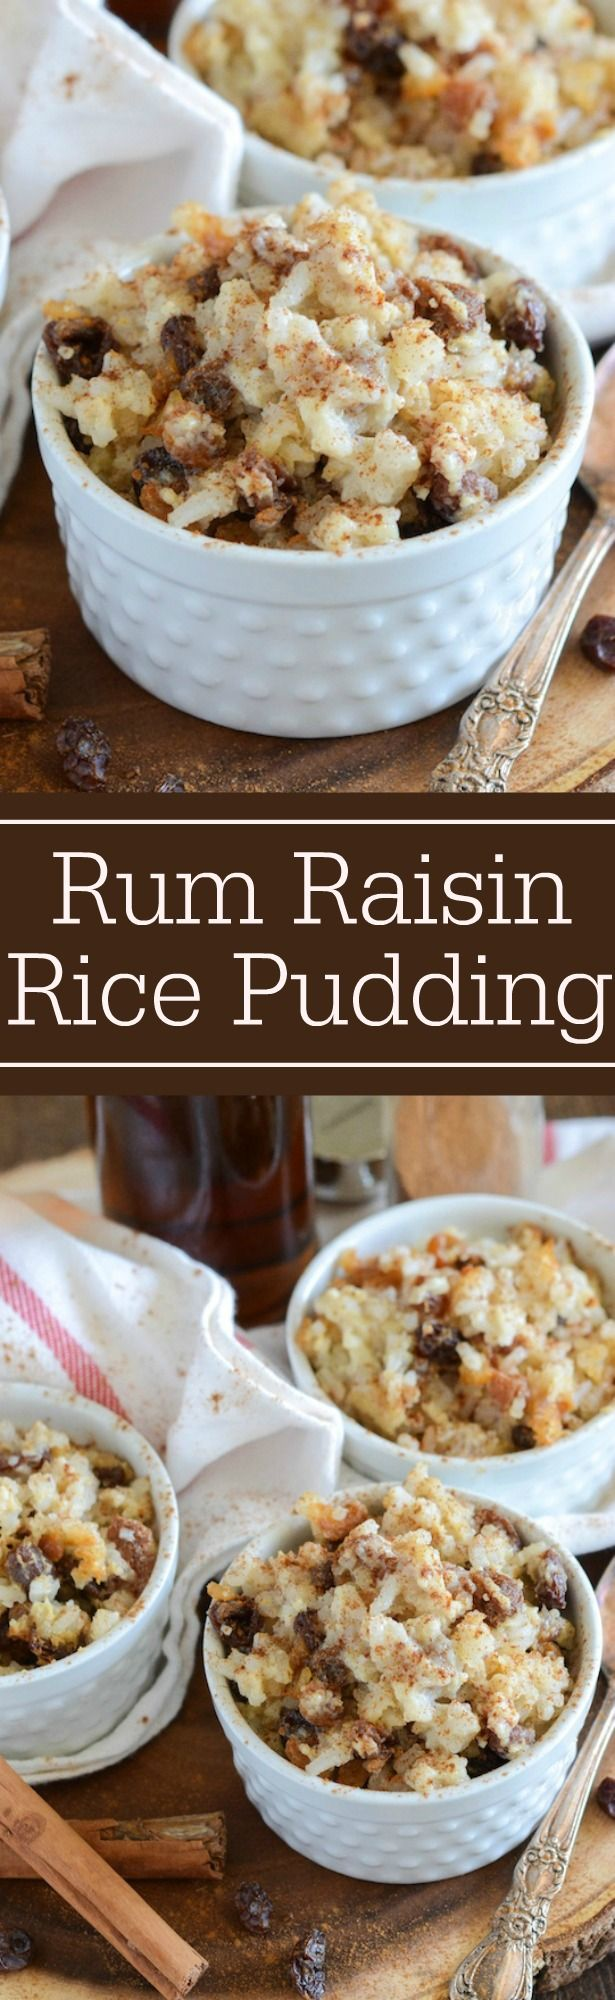 Rum Raisin Baked Rice Pudding! Use up that leftover rice and make rice pudding!